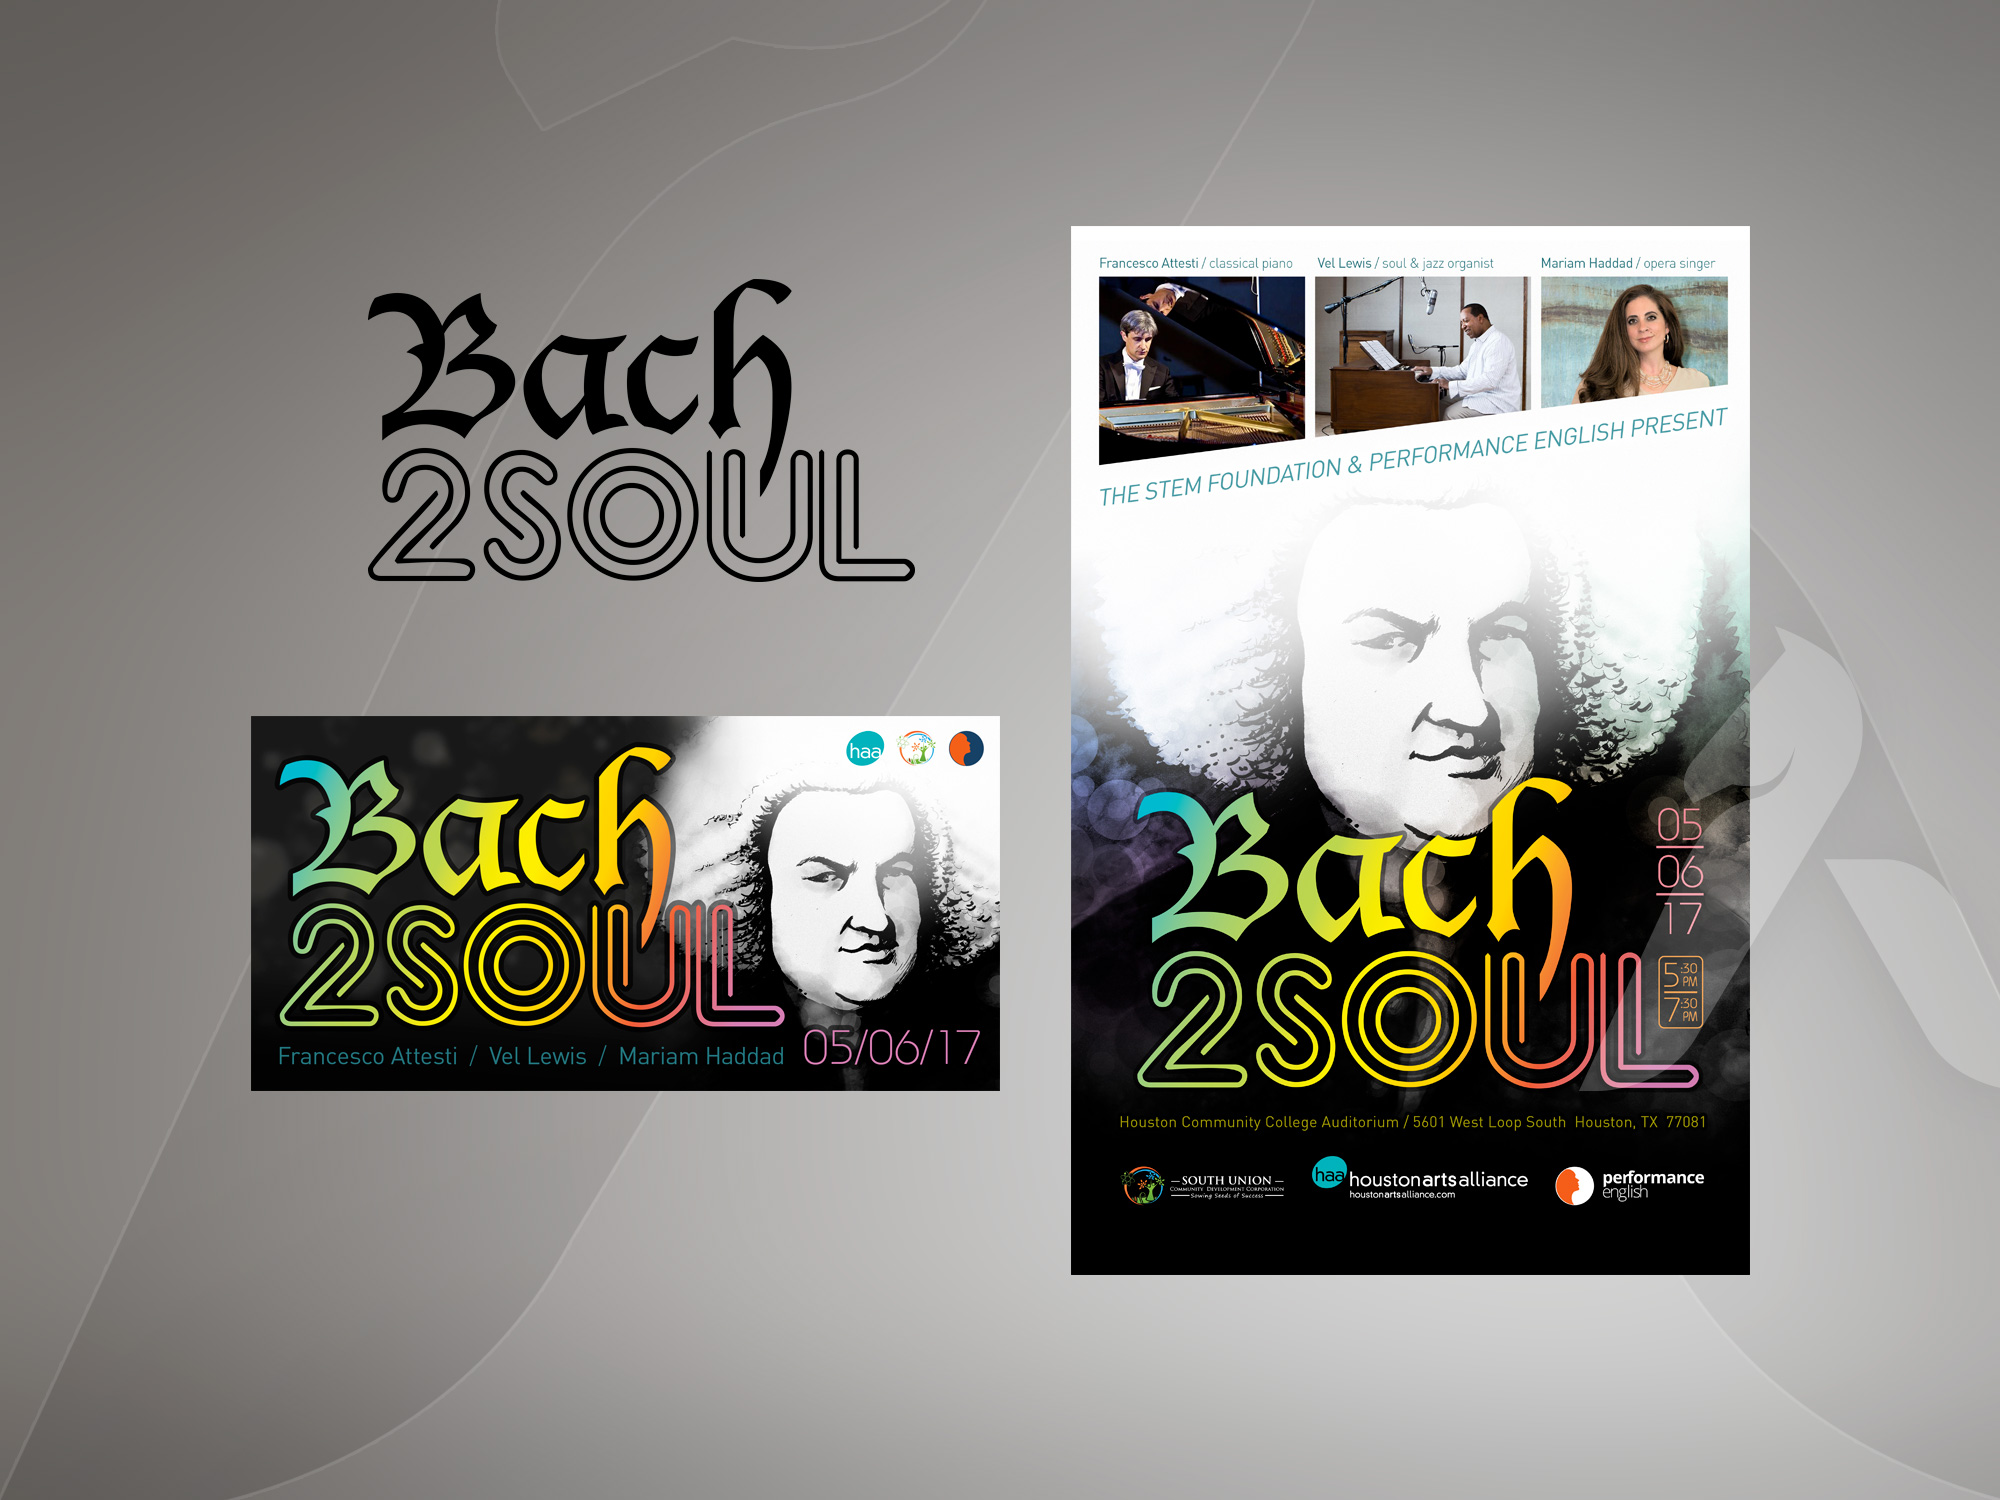 Bach2Soul design & illustration by Hakubashi